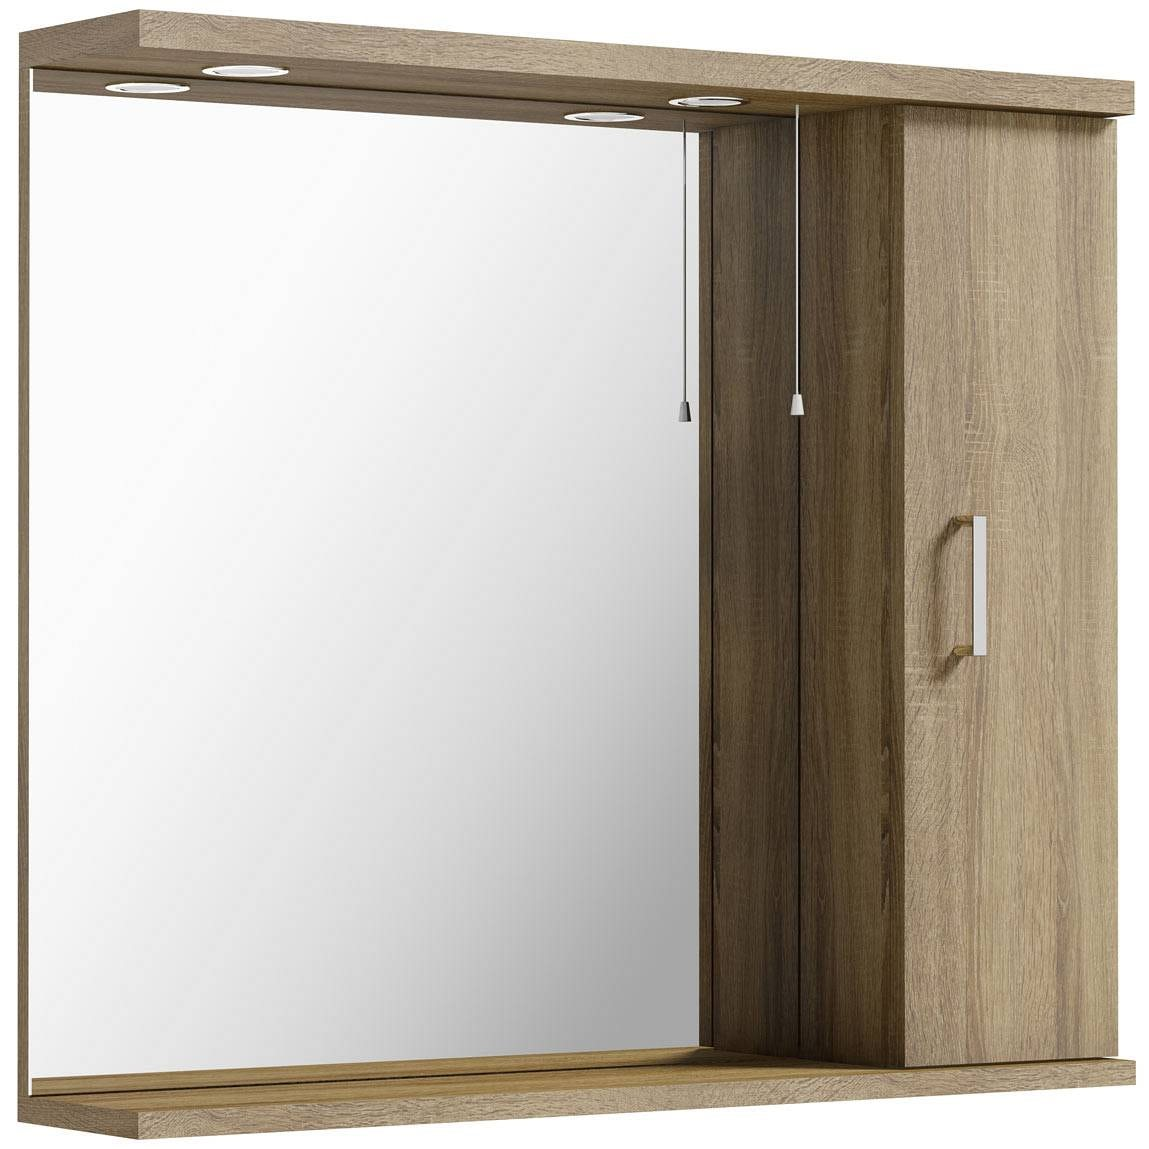 Model  Glass Mirrors Amp Frames Picture Gallery  Royal Oak Glass Victoria